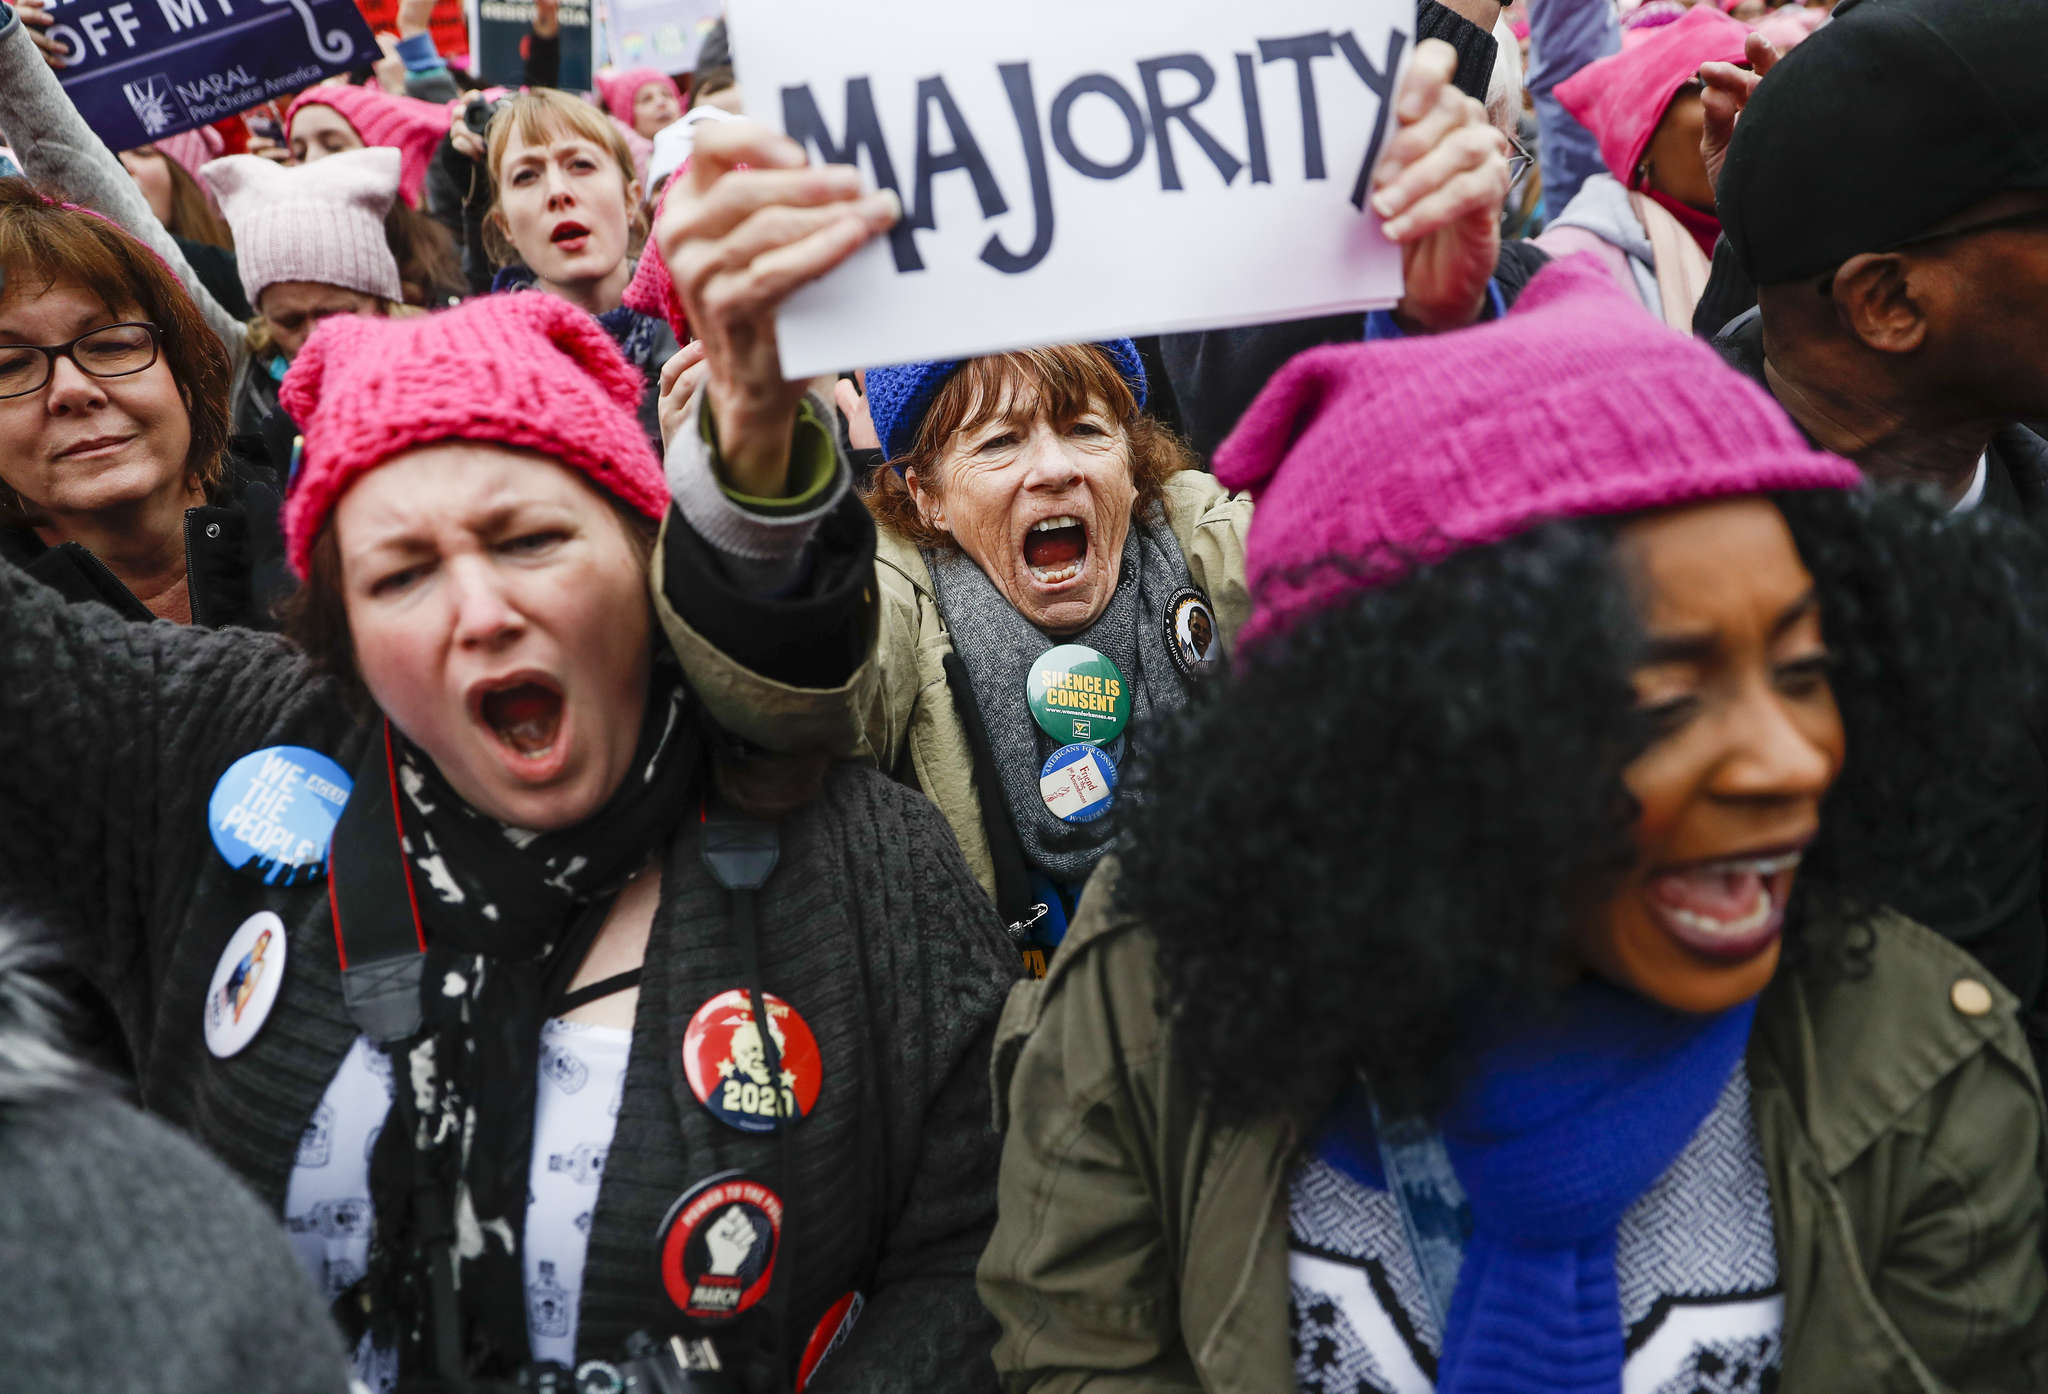 At the Women´s March on Washington. Long before thousands converged on the capital, there was controversy about the lack of diversity.